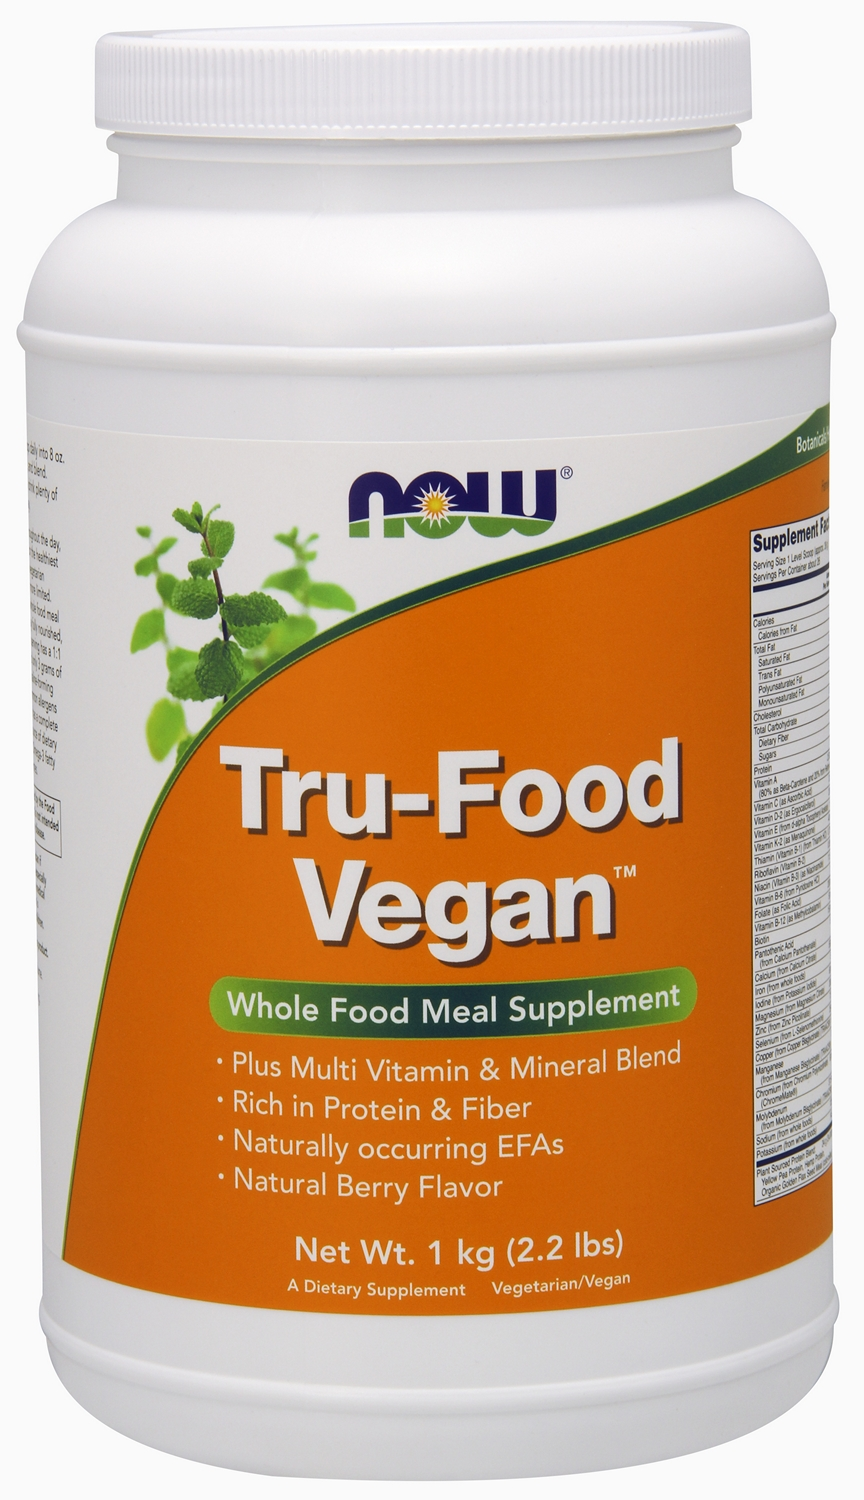 Tru-Food Vegan Natural Berry Flavor 1 kg (2.2 lbs) by NOW